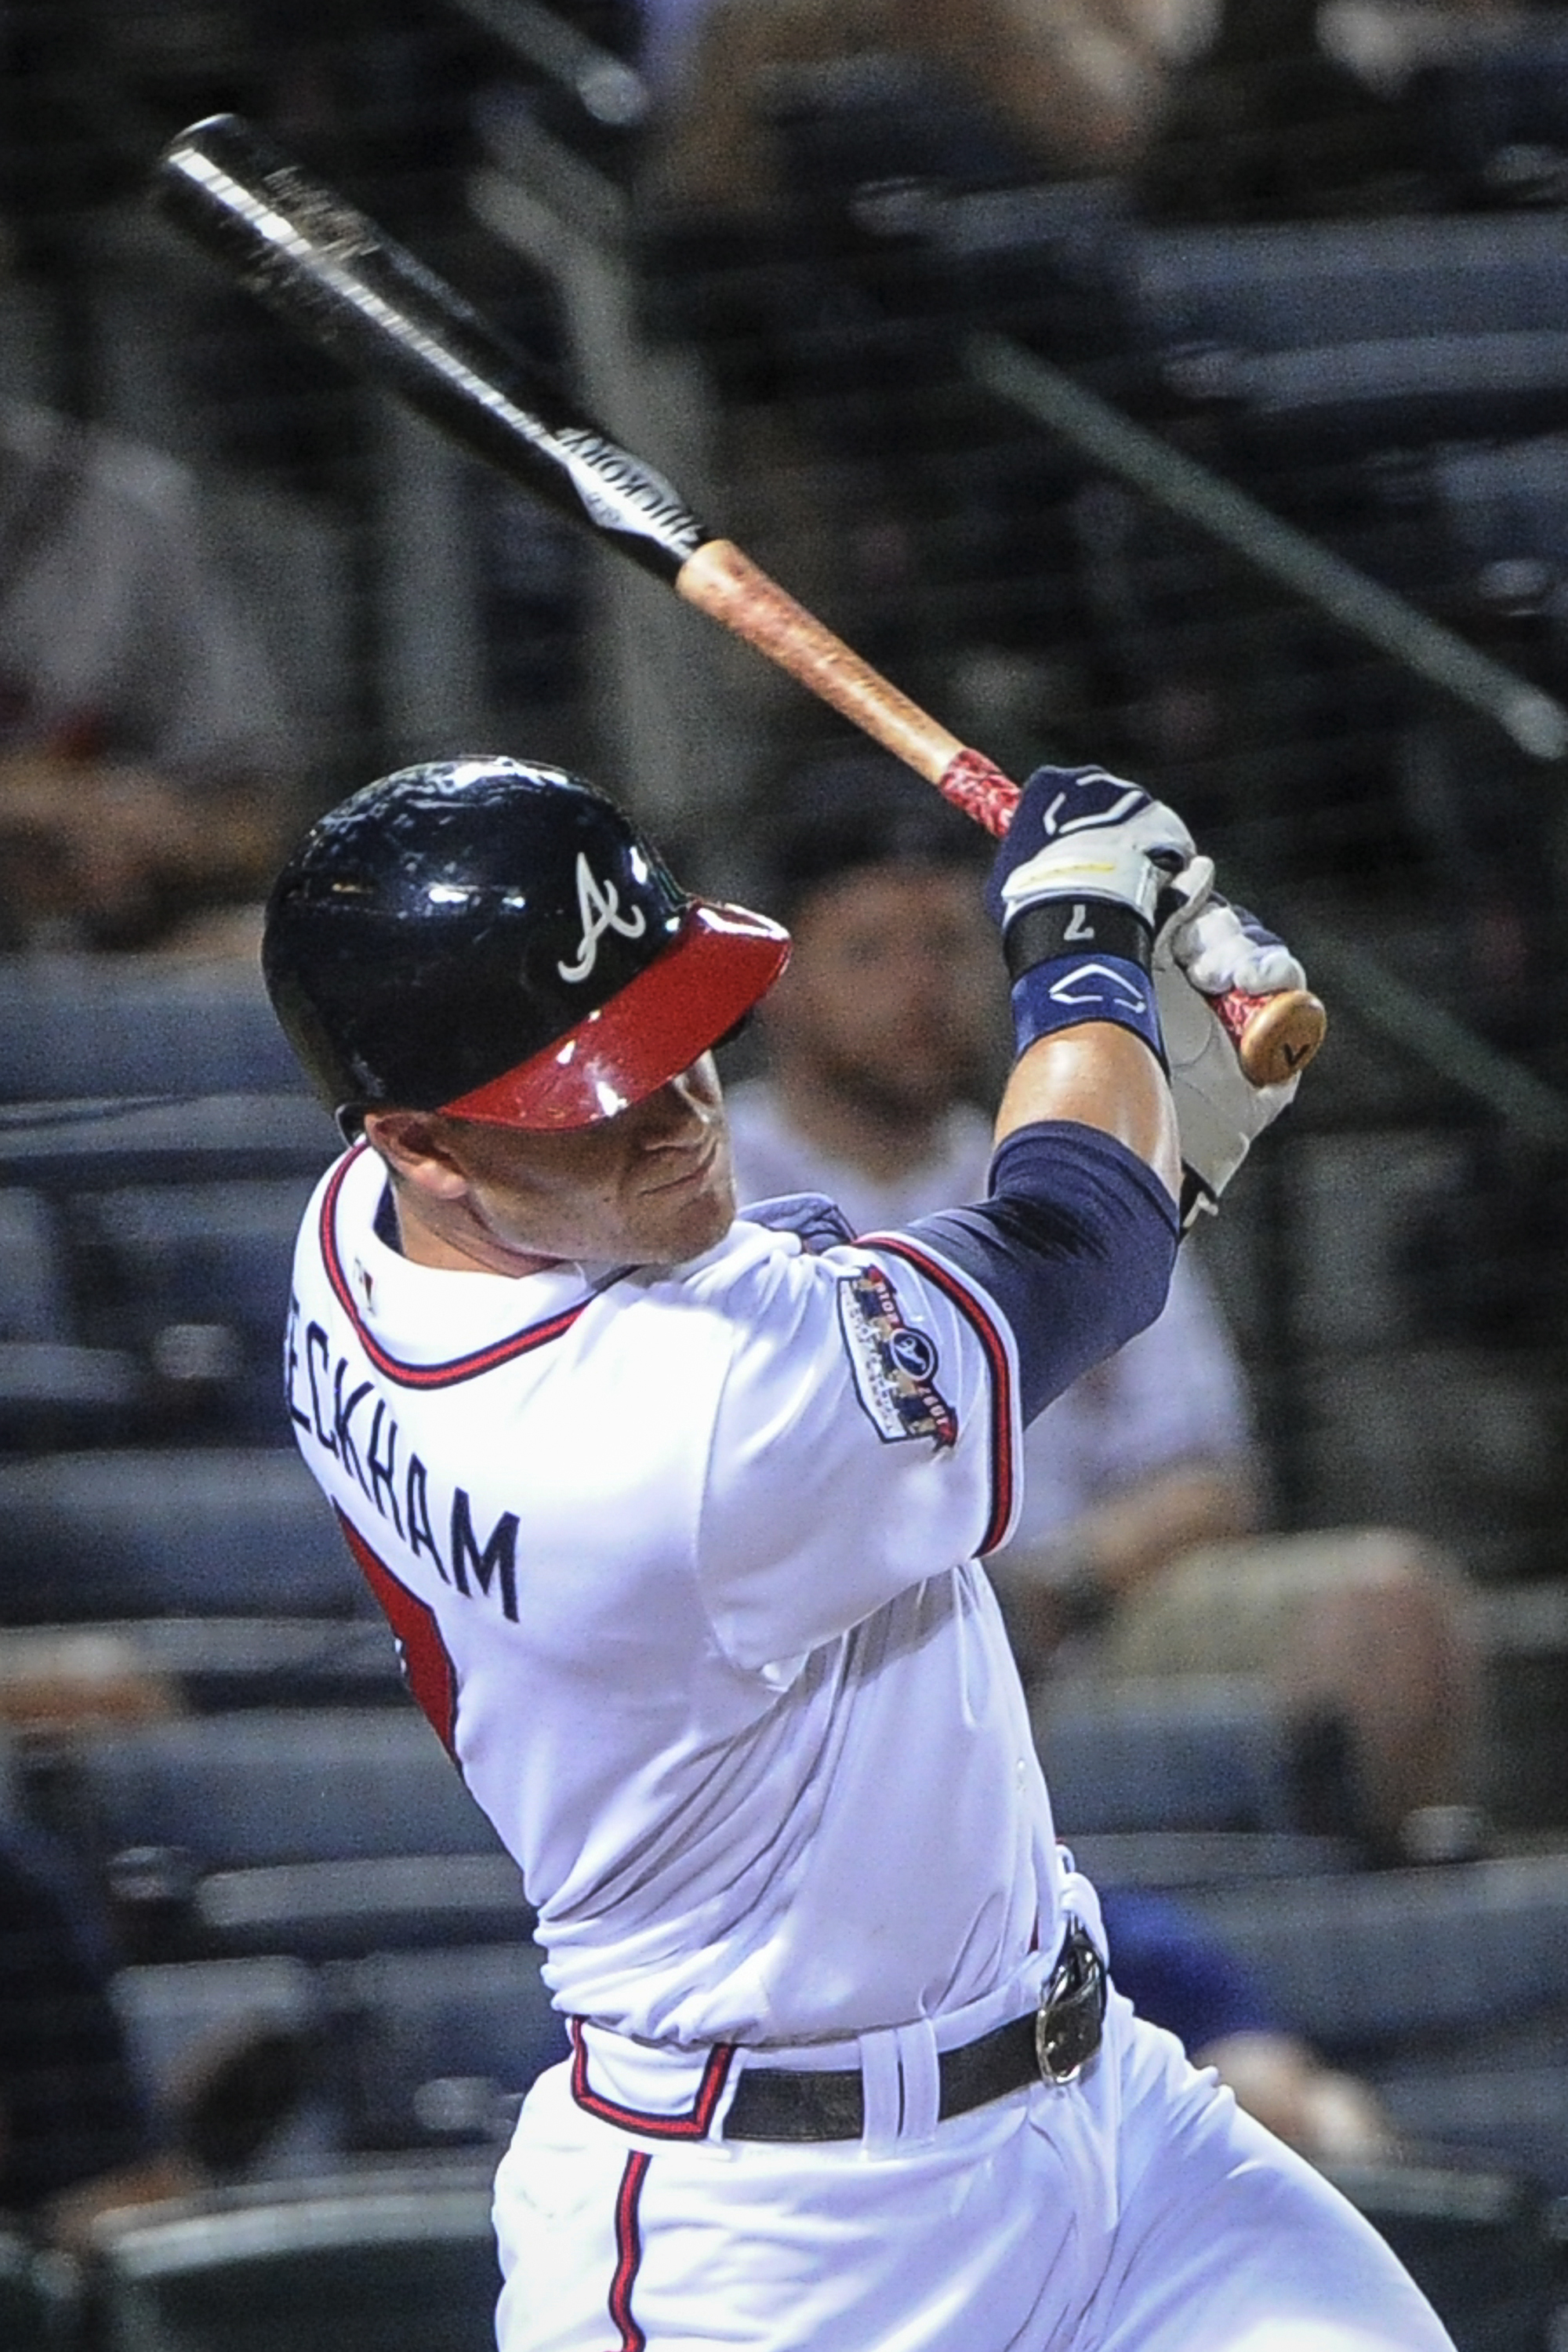 Atlanta Braves' Gordon Beckham hits a two-run double during the sixth inning of a baseball game against the San Diego Padres, Wednesday, Aug. 31, 2016, in Atlanta. (AP Photo/John Amis)